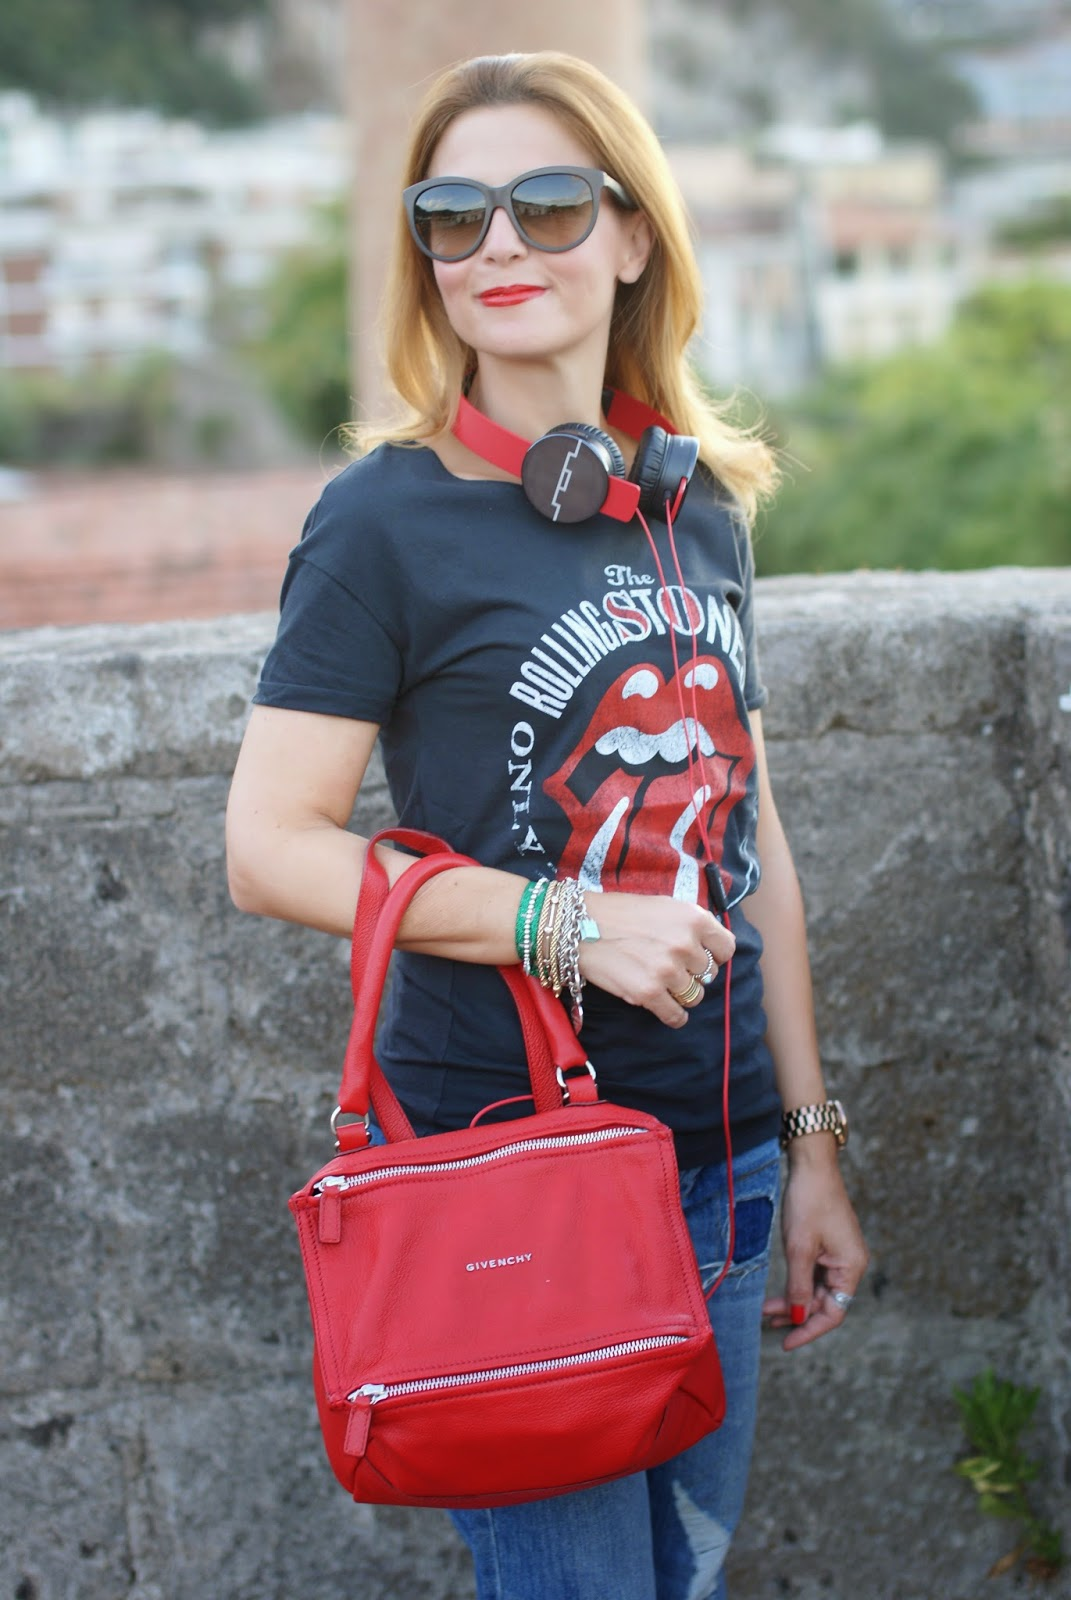 Givenchy red Pandora bag, Rolling Stones tee, Fashion and Cookies, fashion blogger